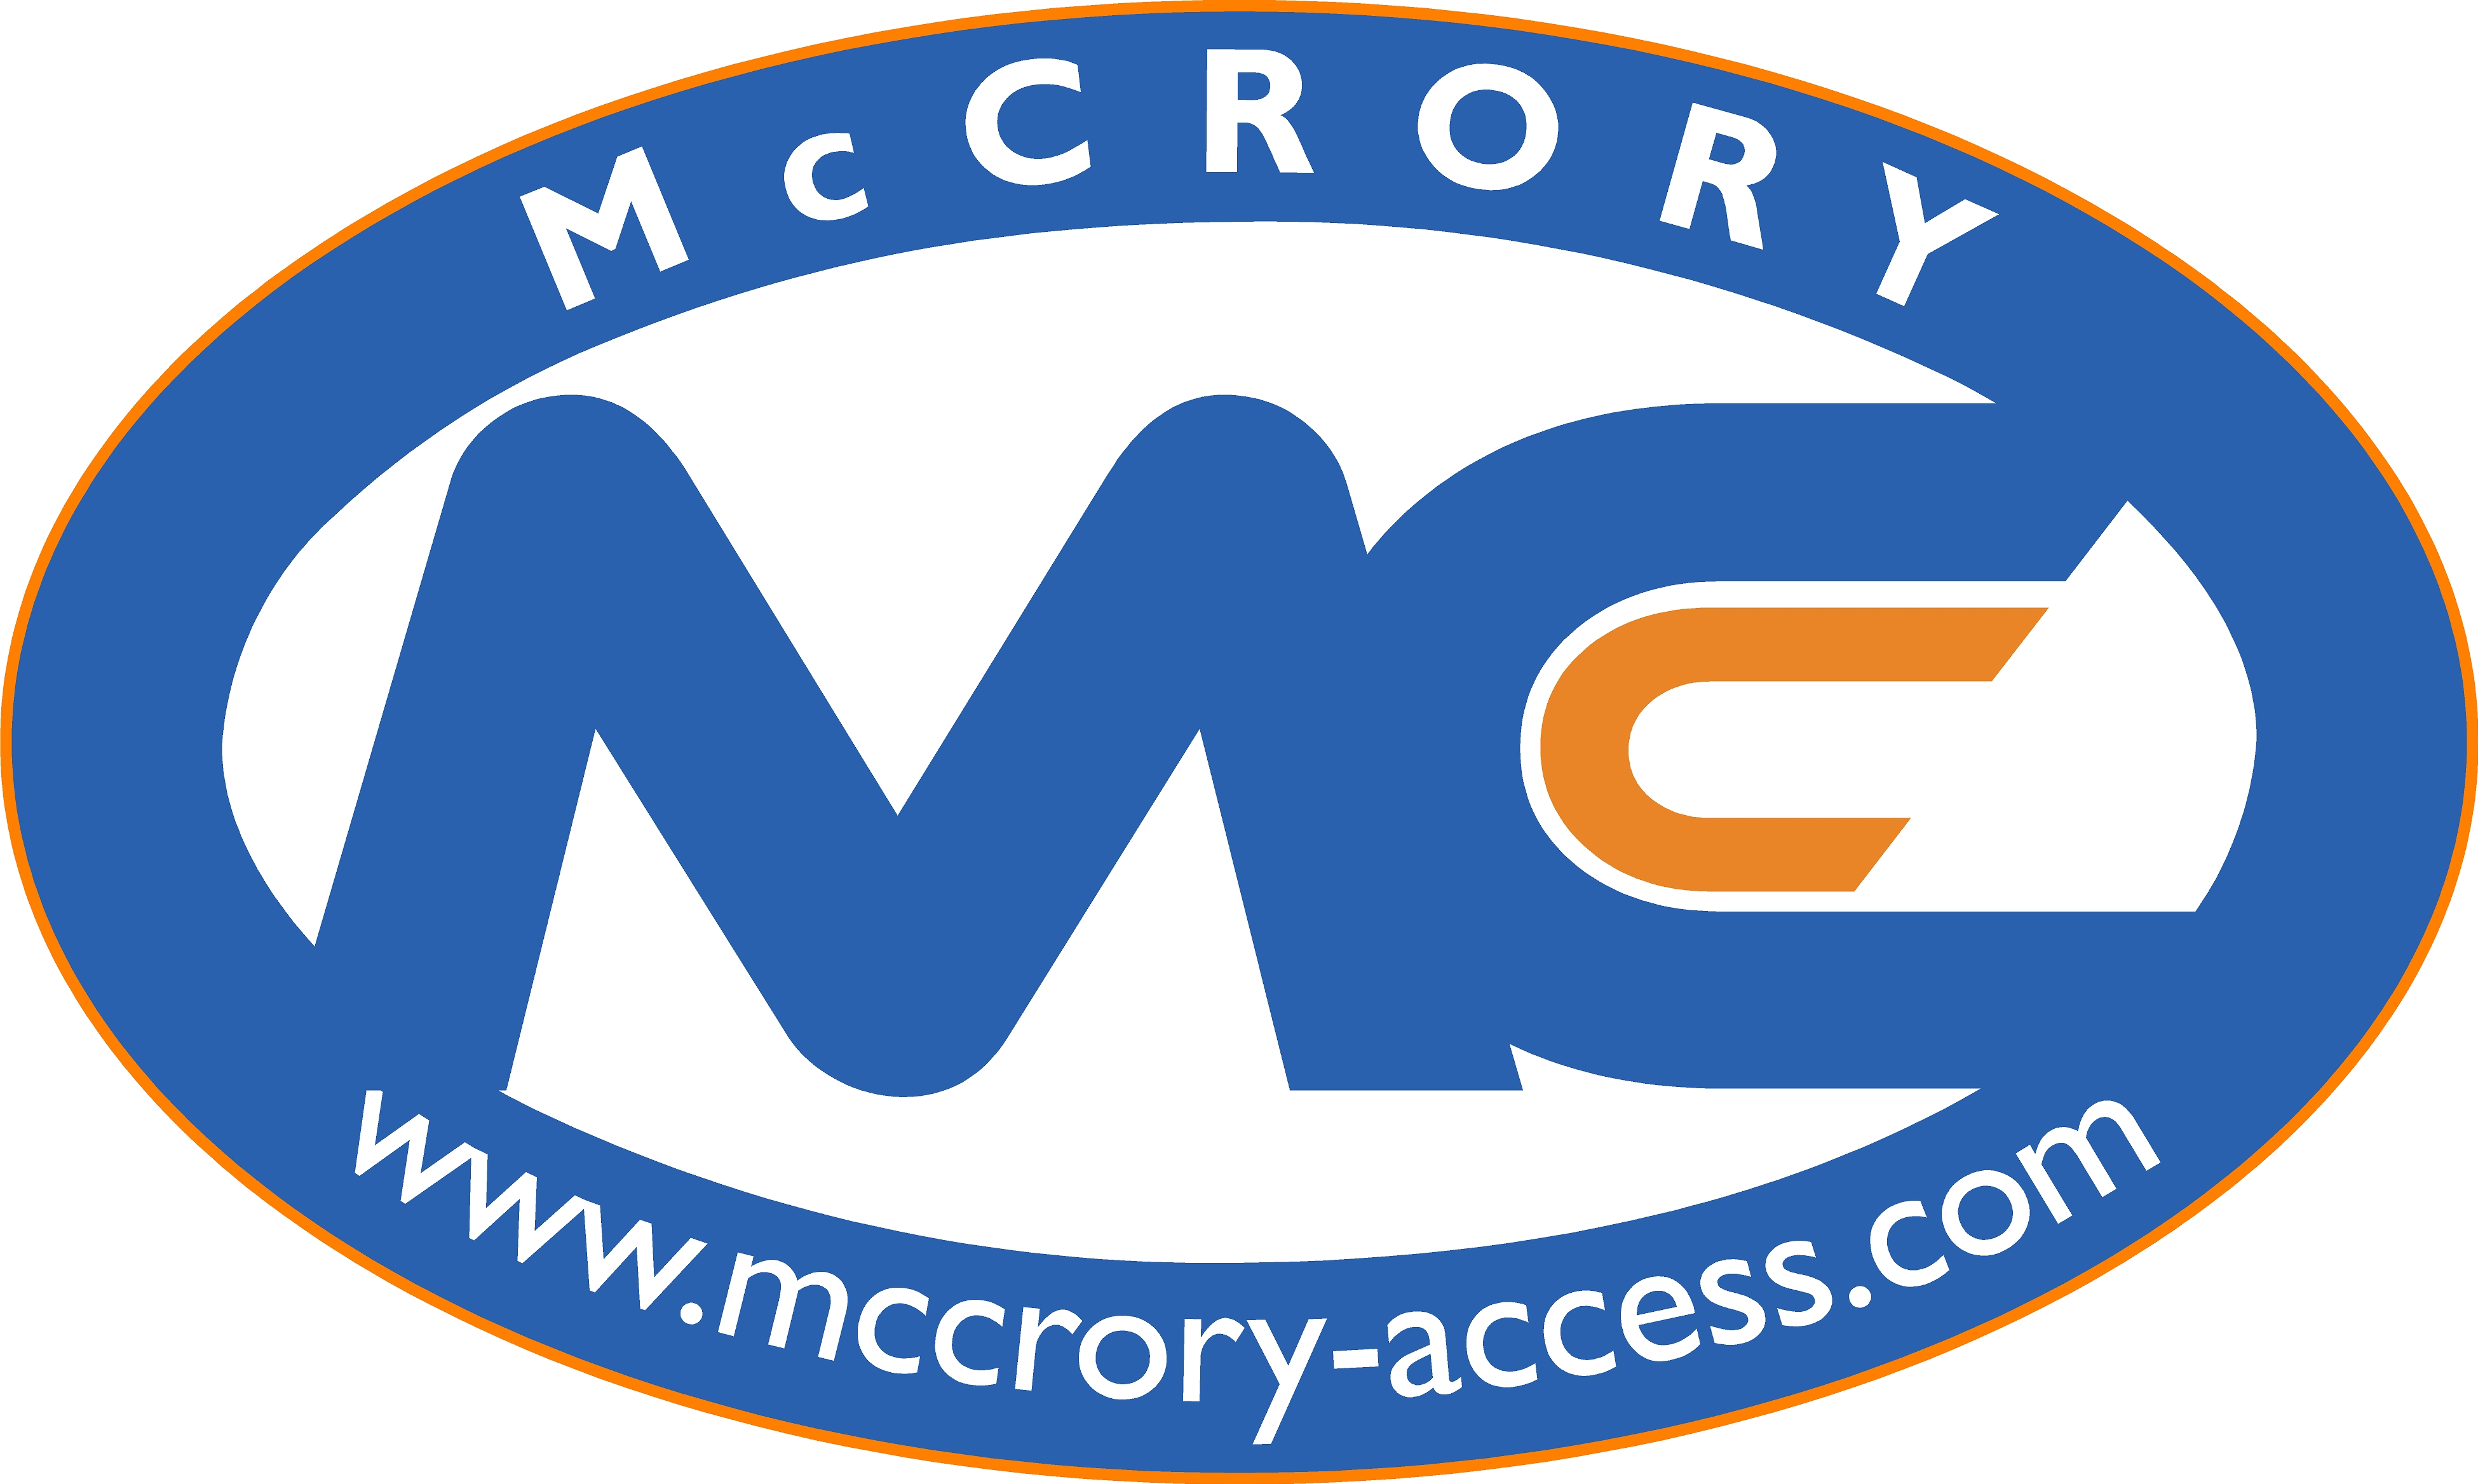 McCrory Access Solutions